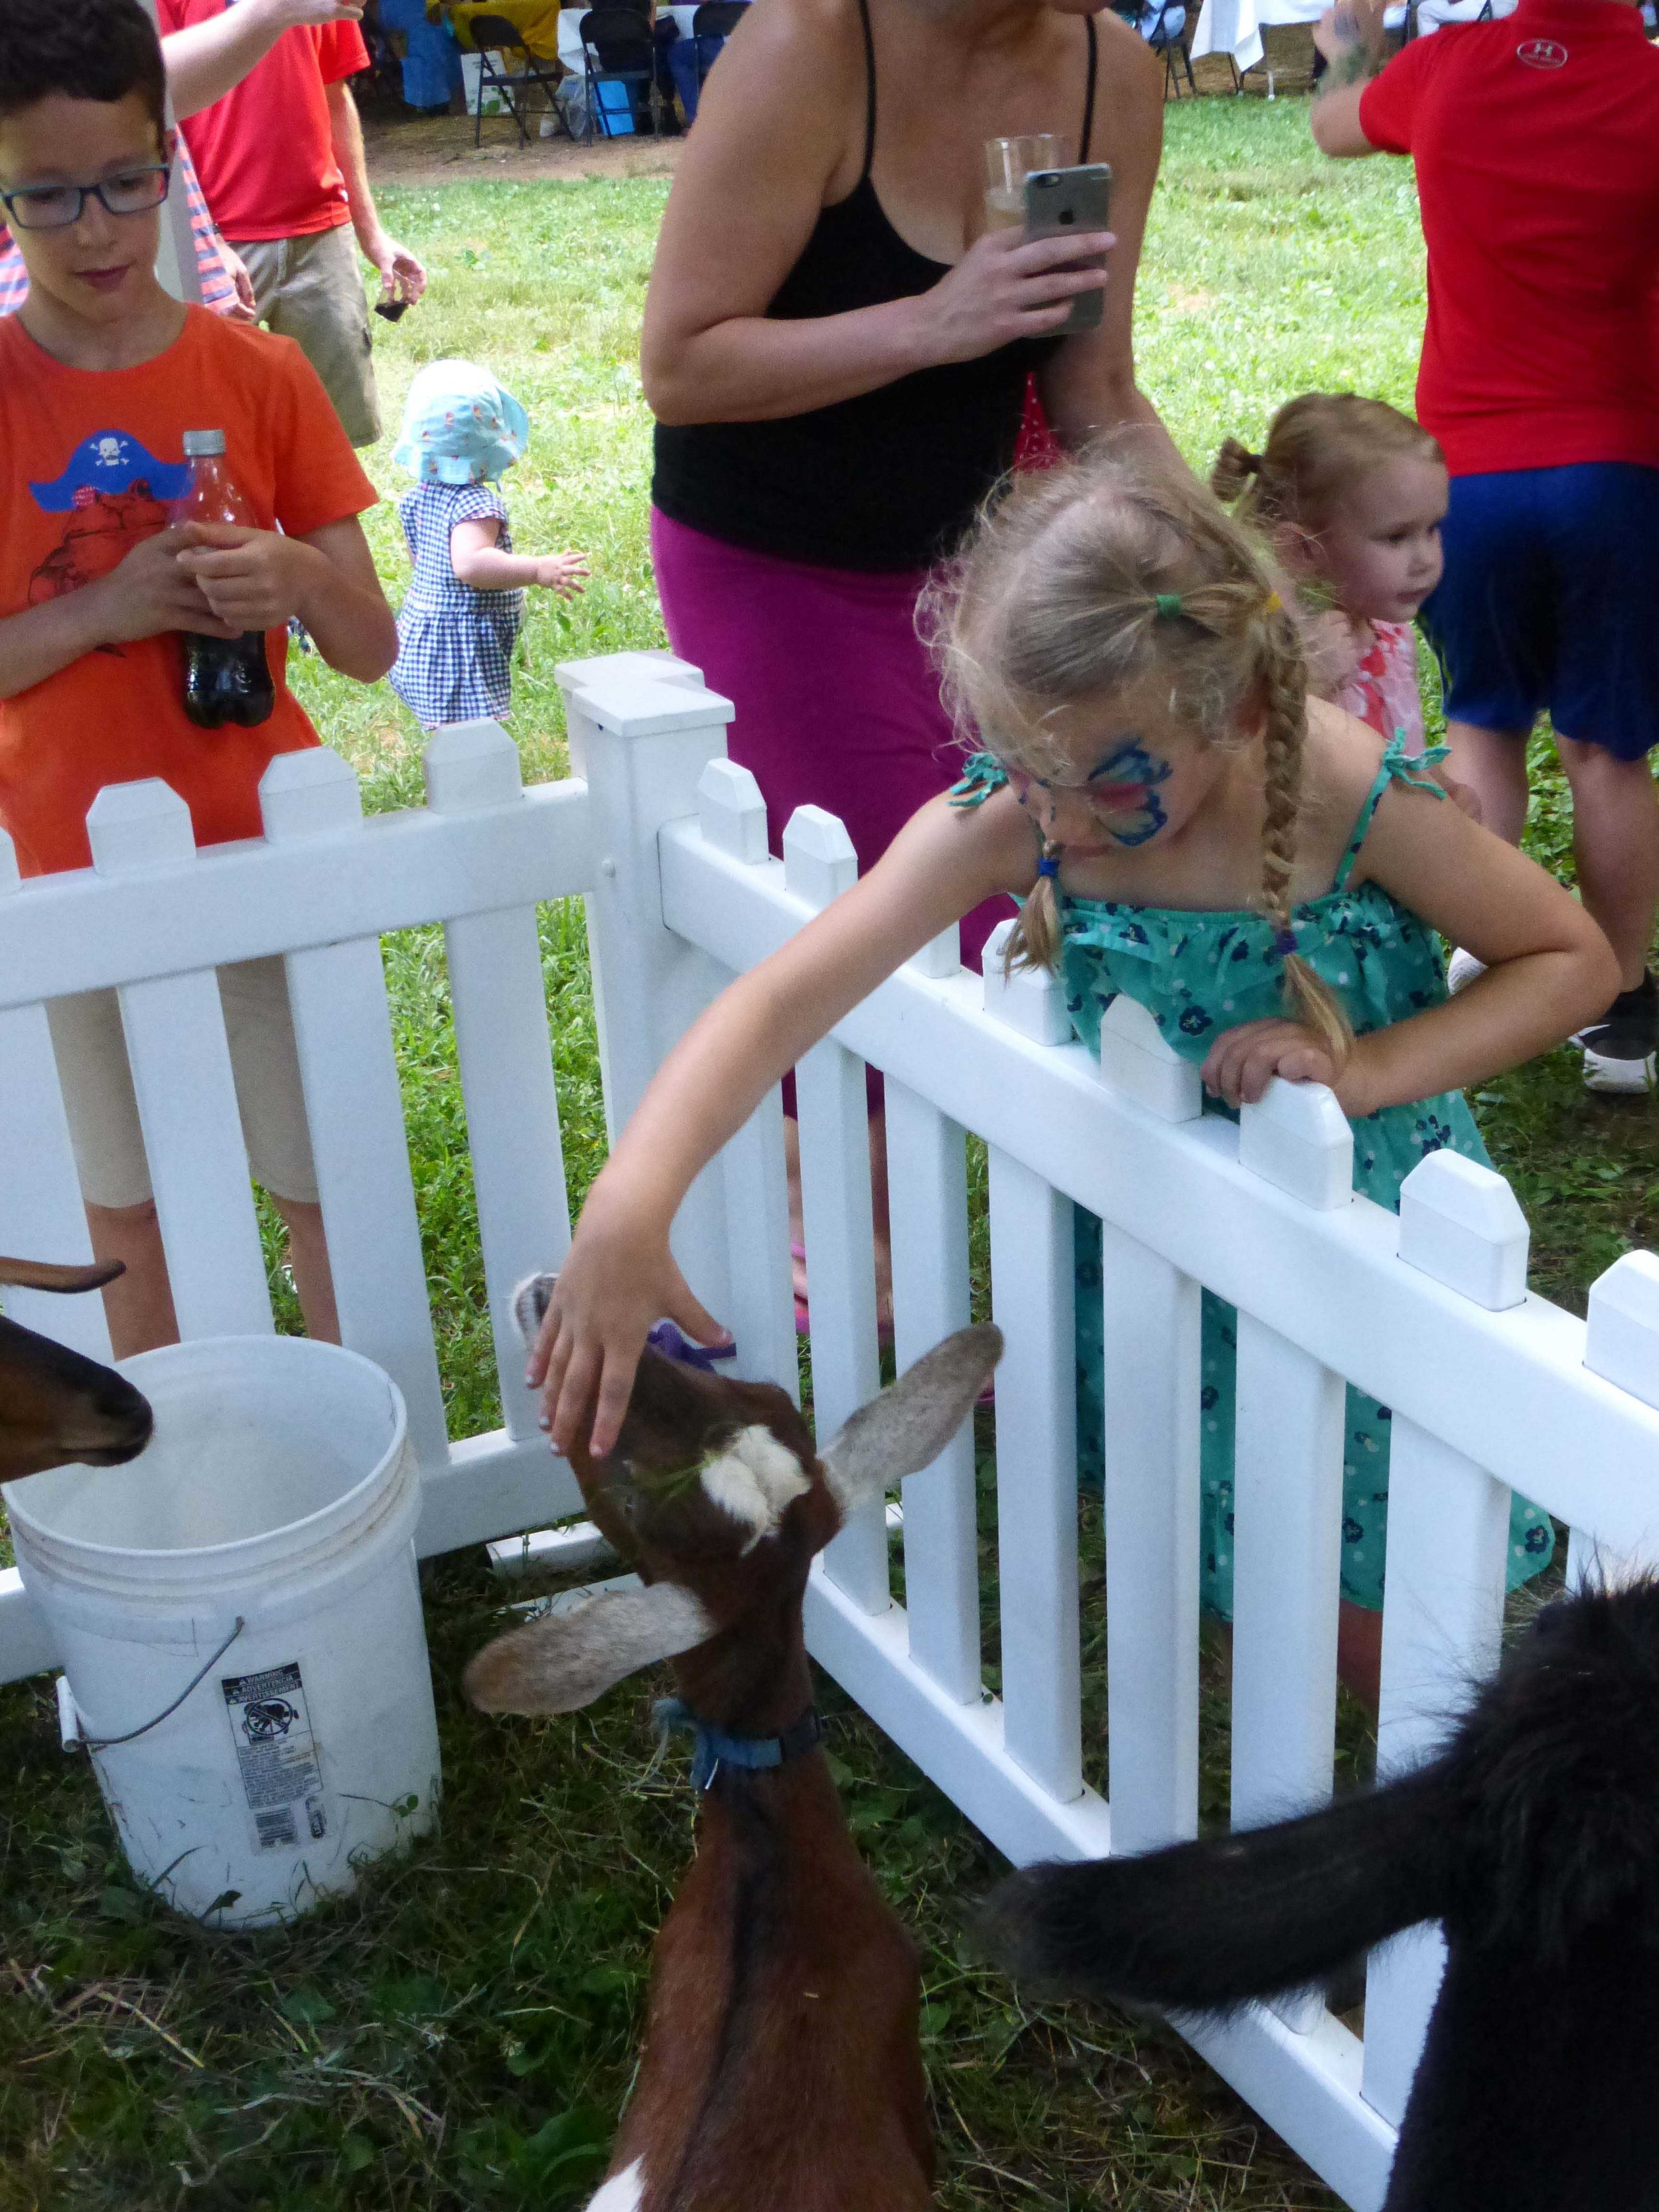 lenore rubino/realtor sponsored the petting zoo, face painting, and gelato.